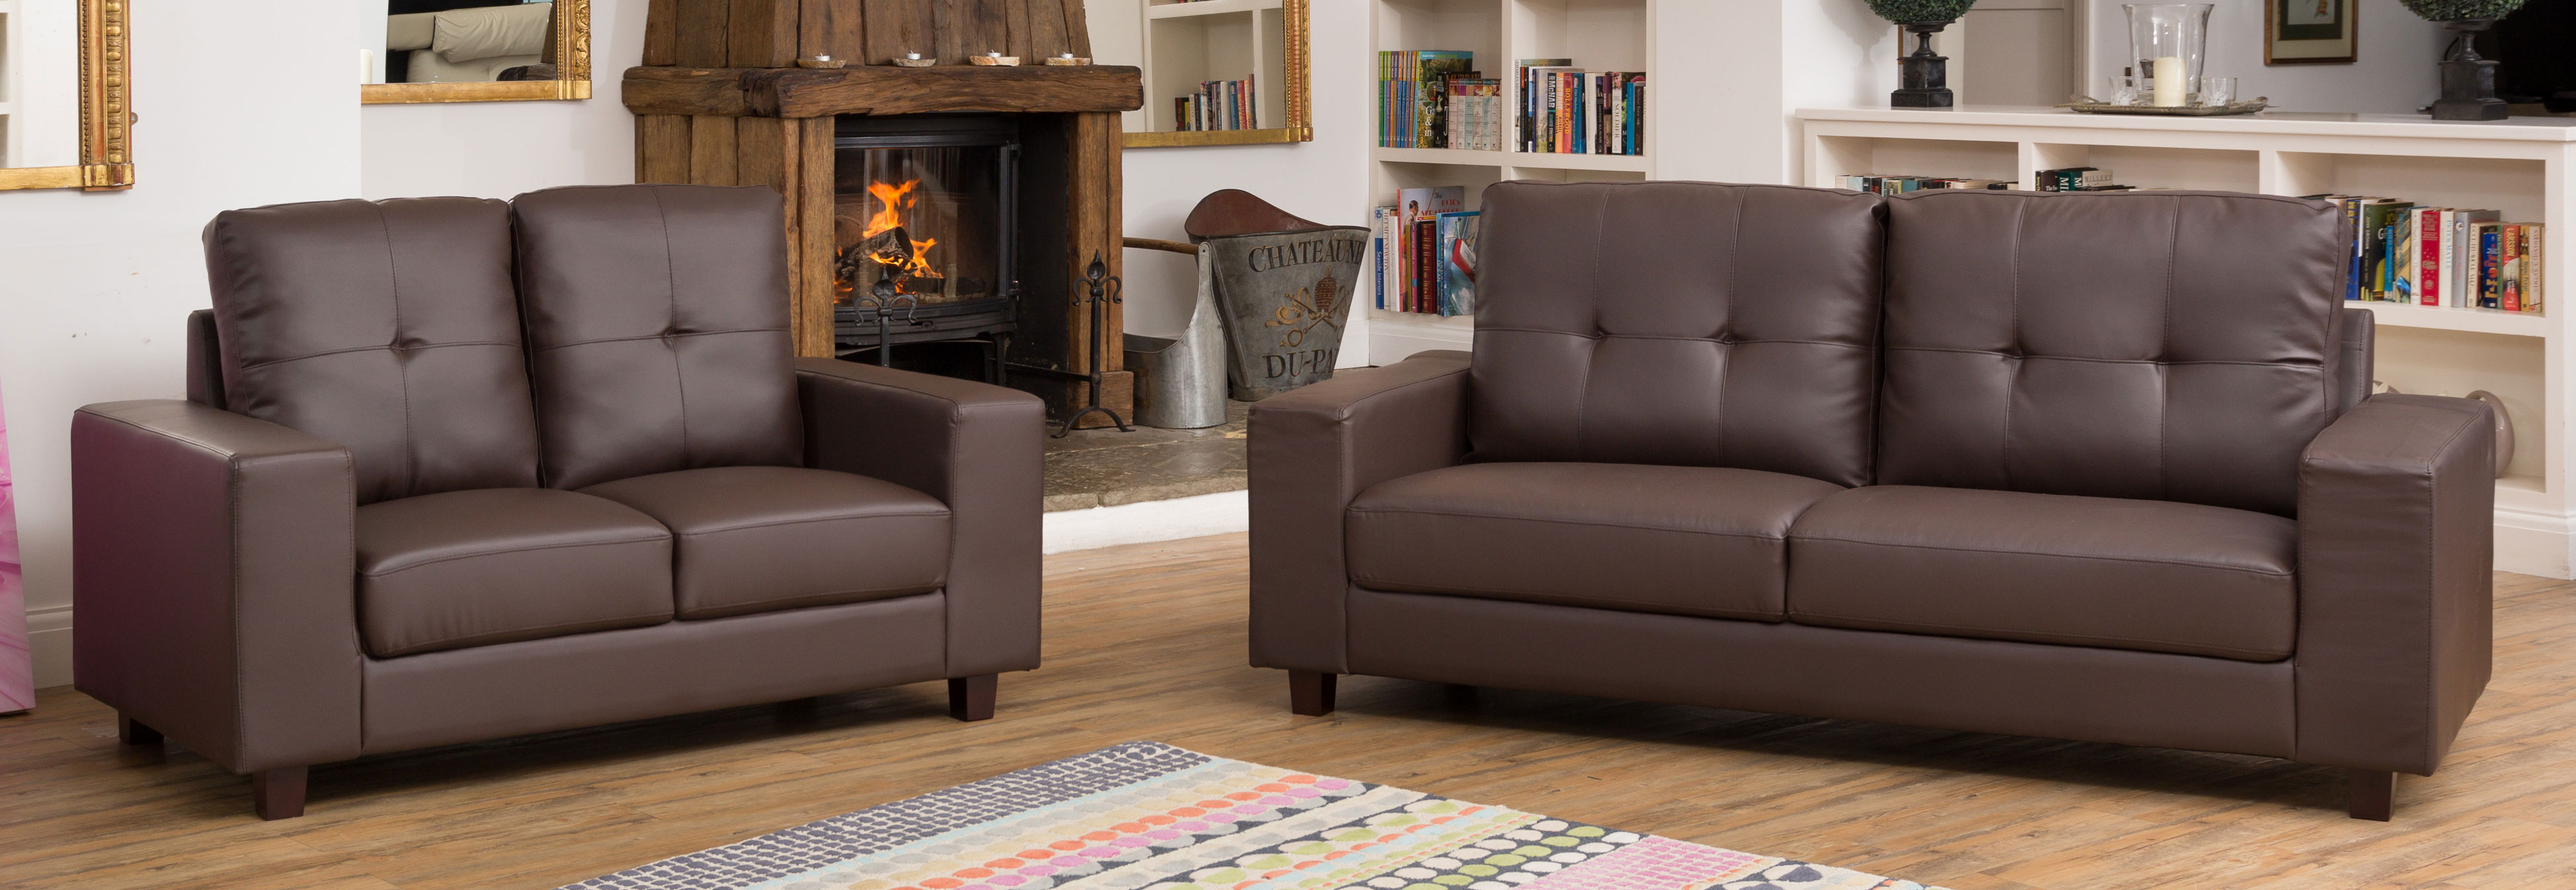 Ashdown Suite brown